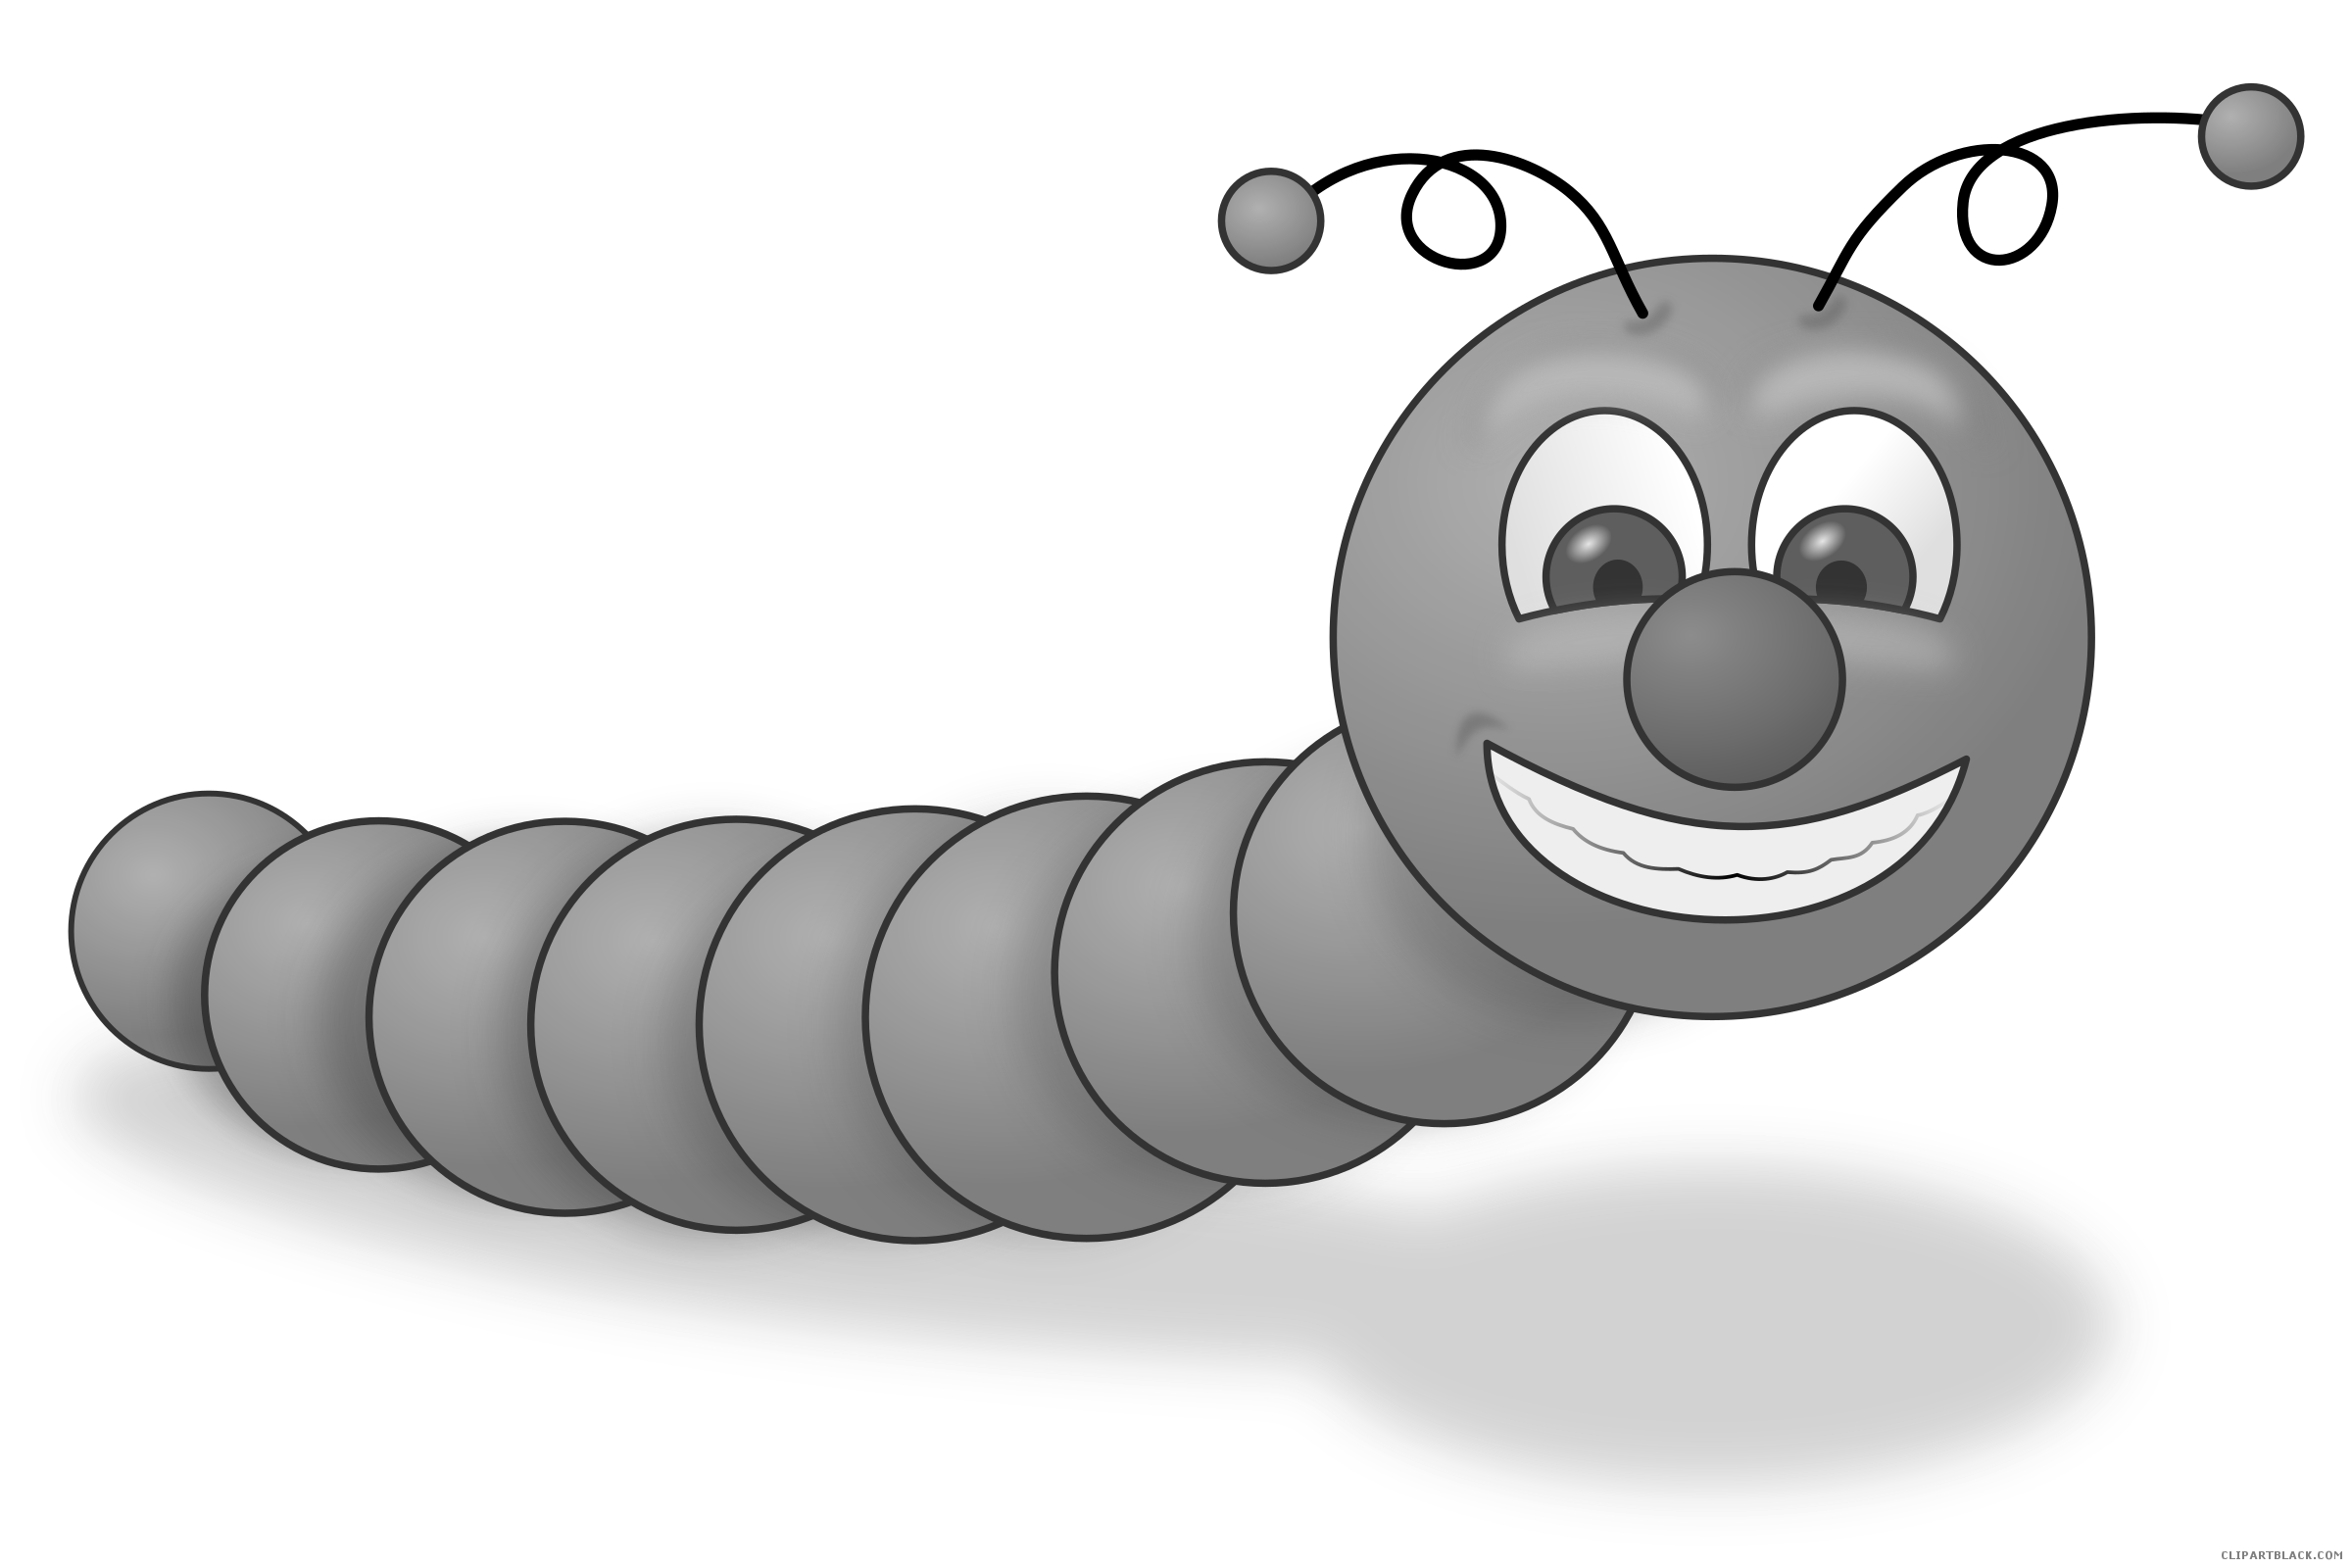 Apple clipart greyscale vector free Worm - Page 6 of 7 - ClipartBlack.com vector free